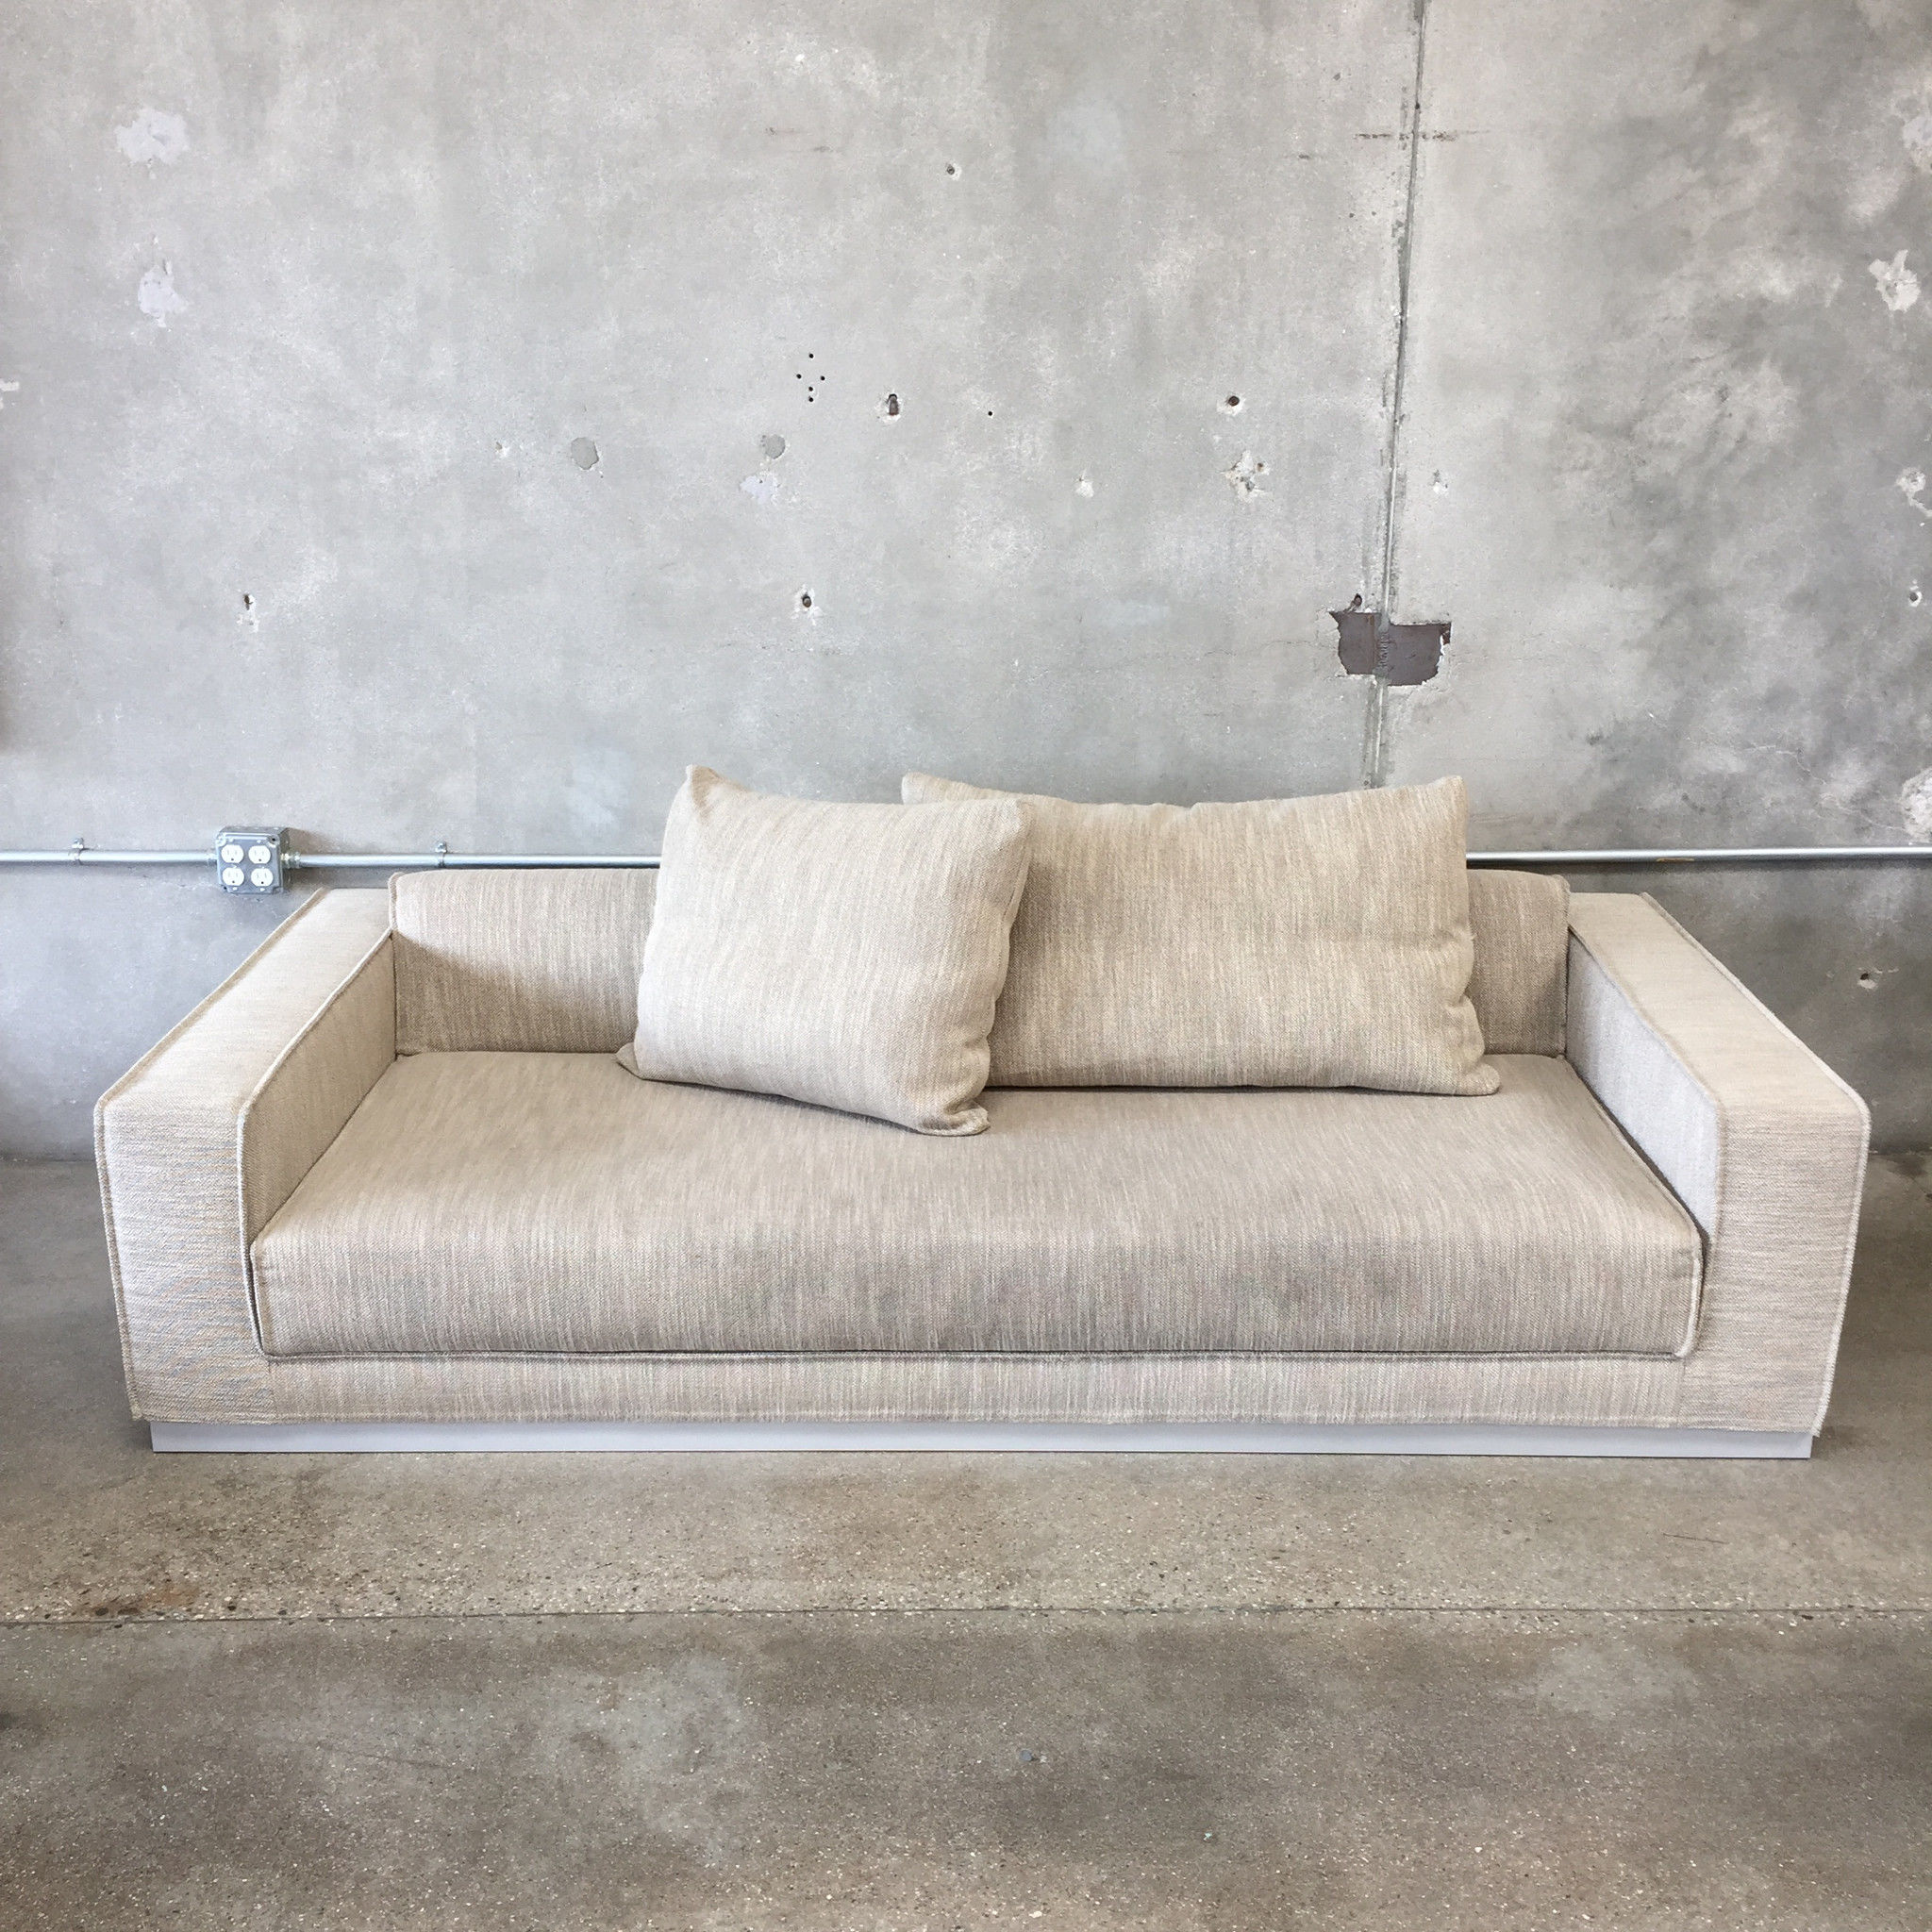 terrific craigslist sleeper sofa architecture-Superb Craigslist Sleeper sofa Photo